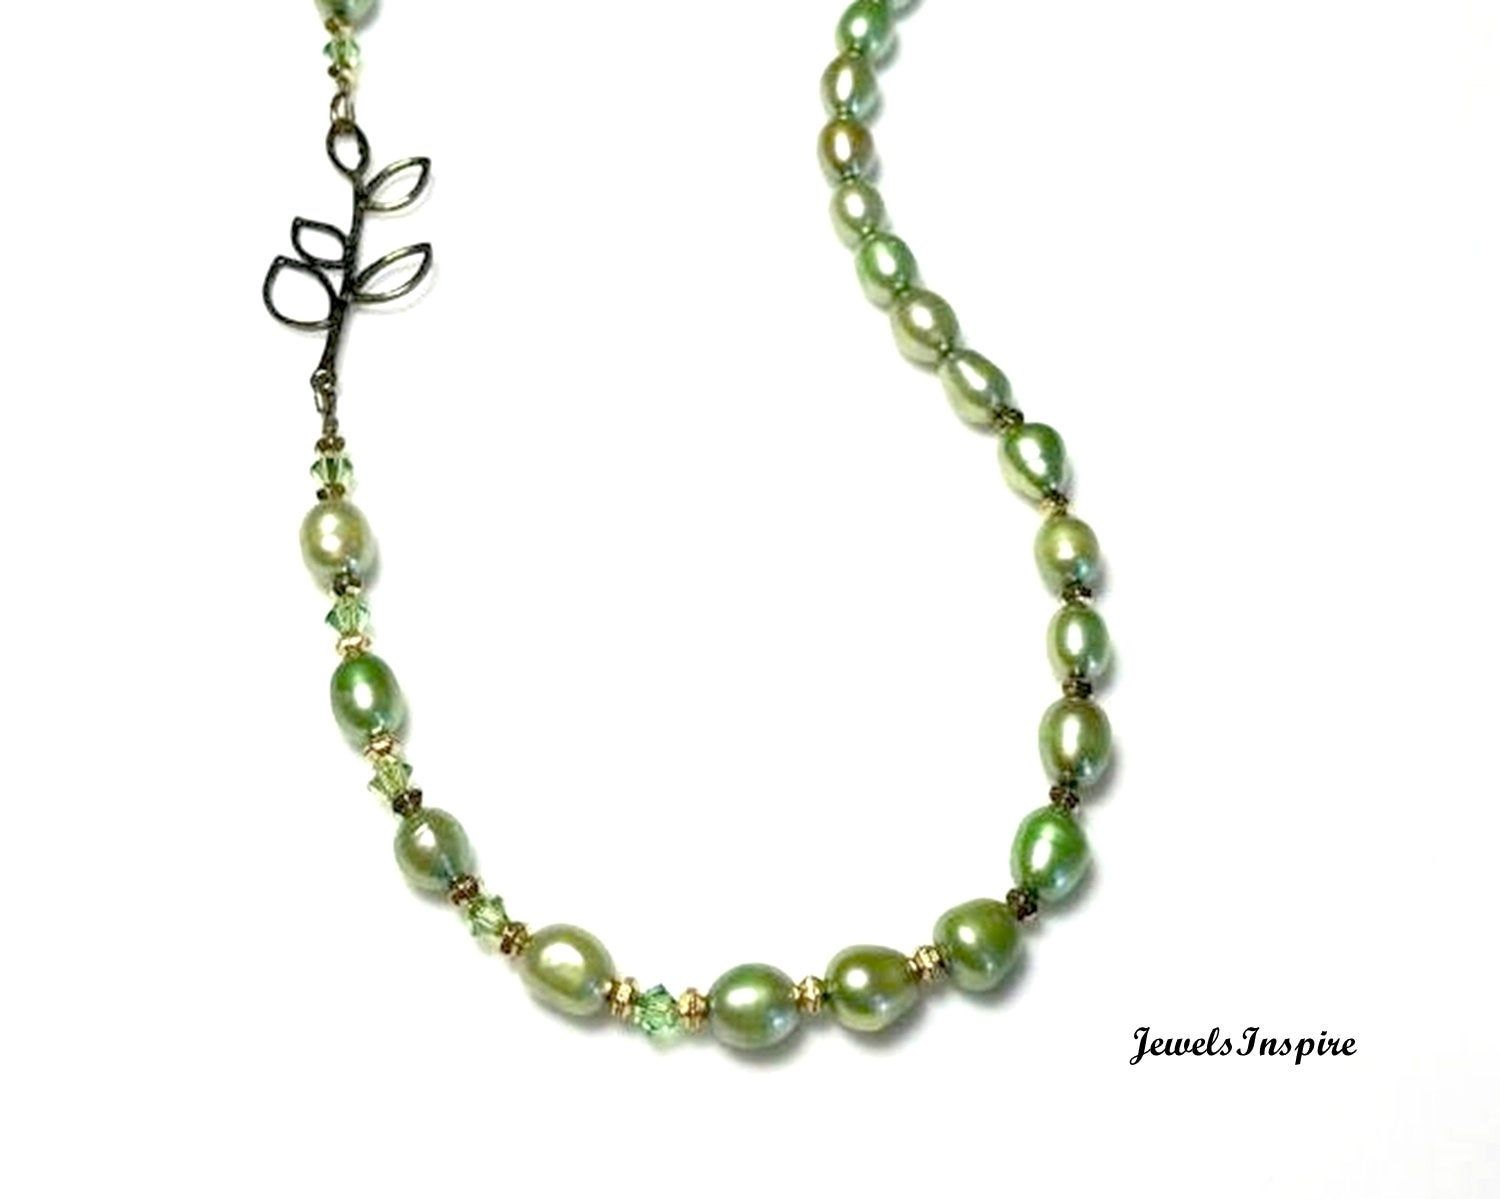 Freshwater Pearl Necklace Bronze Leaf Branch Link Olive Etsy Freshwater Pearl Necklaces Asymmetrical Jewelry Glass Beads Jewelry